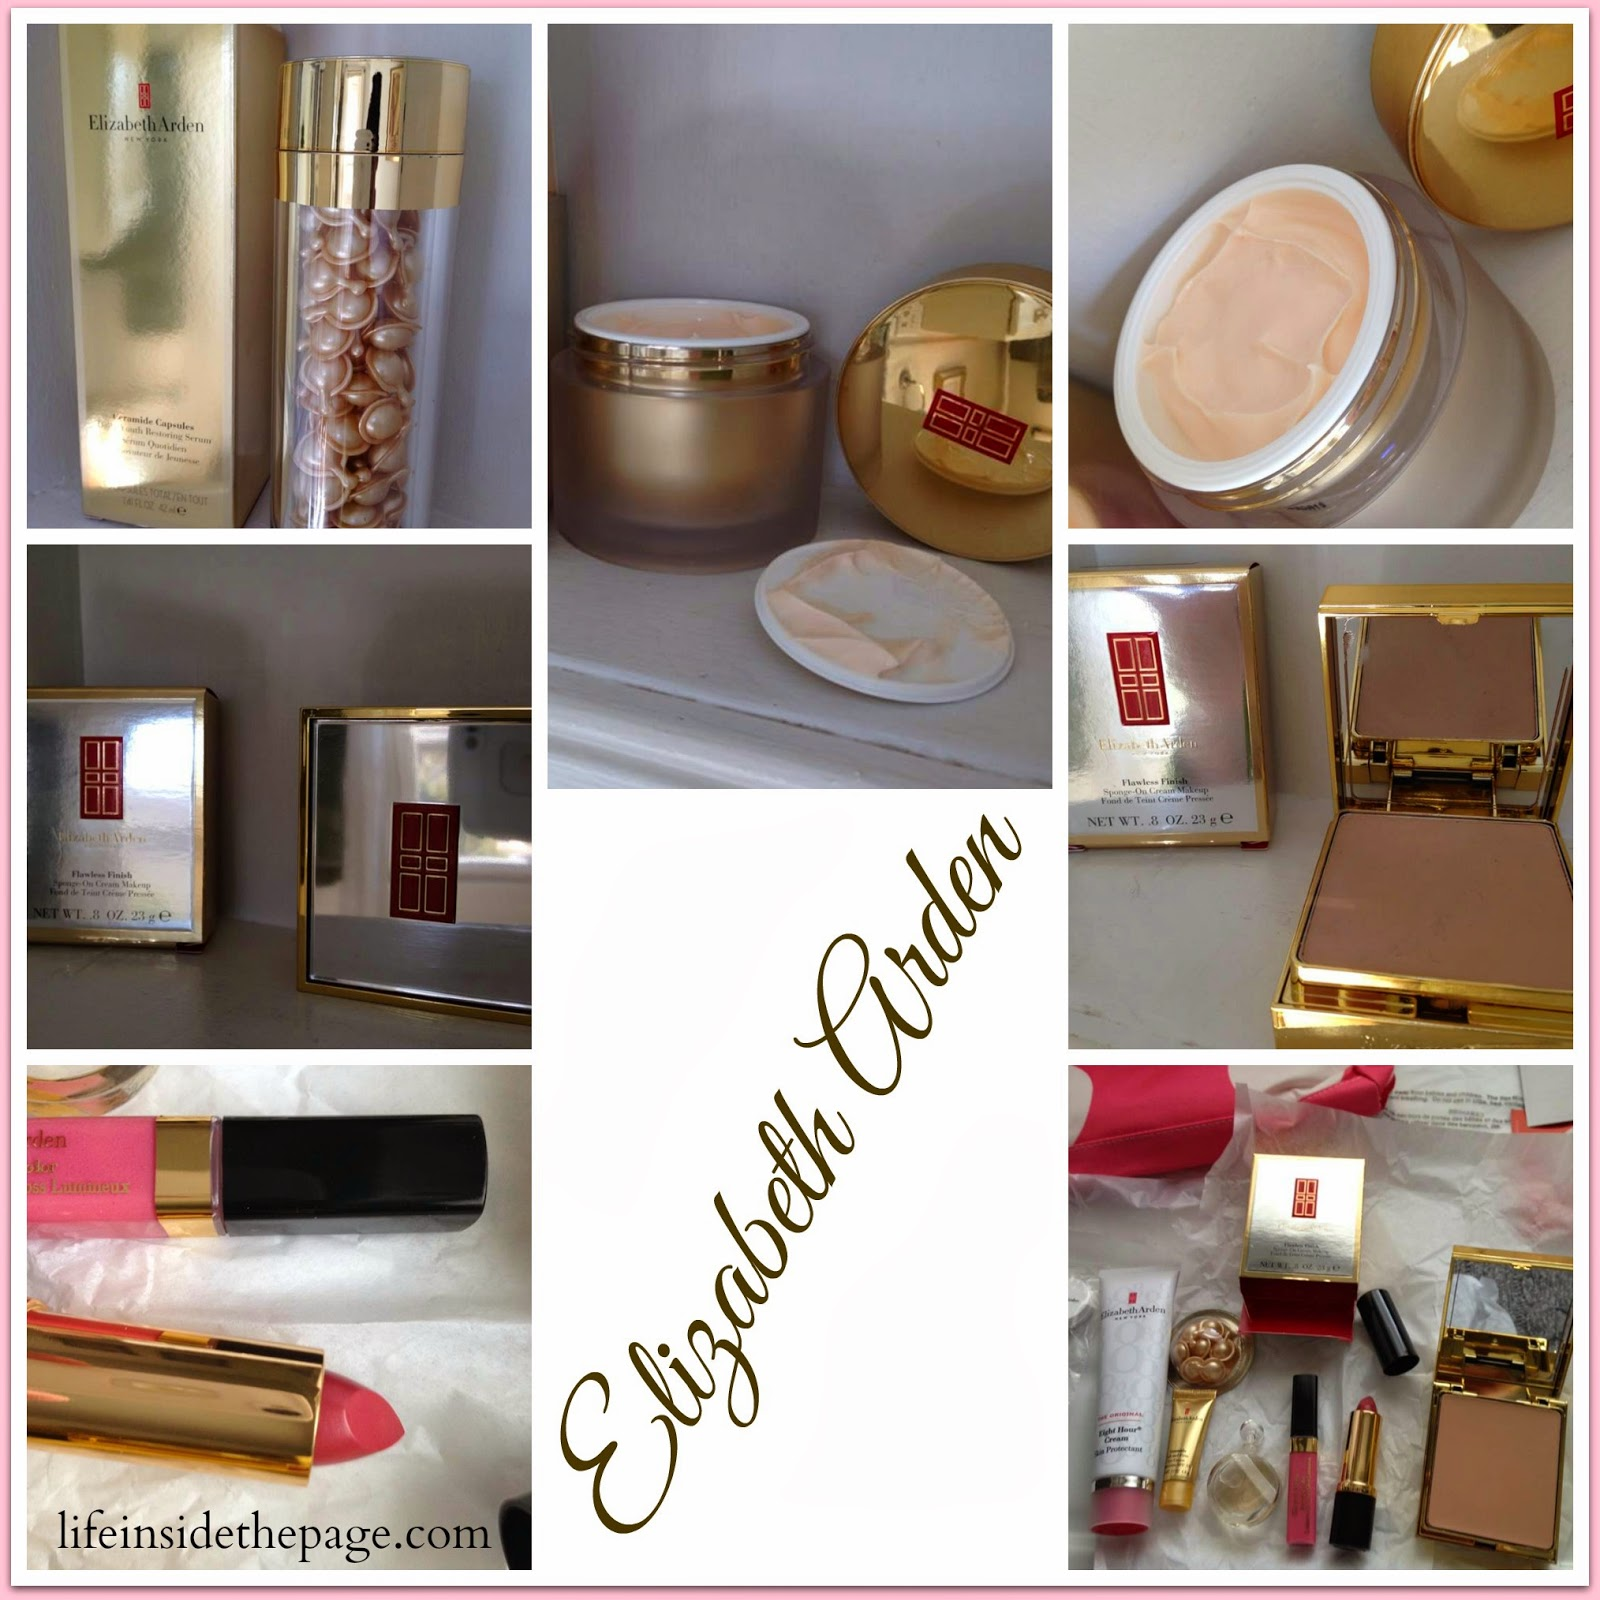 Department: Beauty | Elizabeth Arden | Ceramide | Day Cream - Serum - Makeup